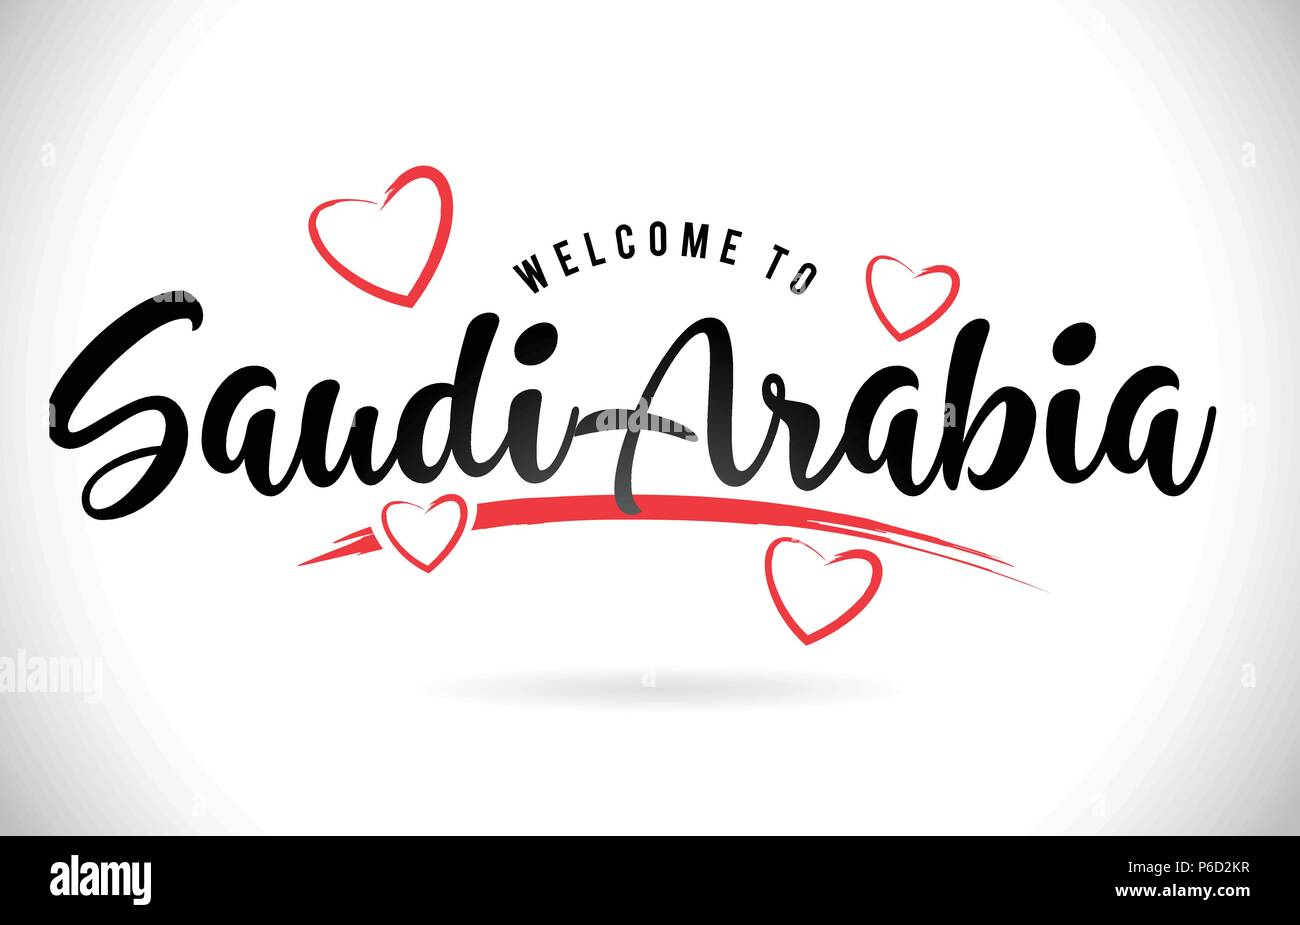 SaudiArabia Welcome To Word Text with Handwritten Font and Red Love Hearts Vector Image Illustration Eps. - Stock Image